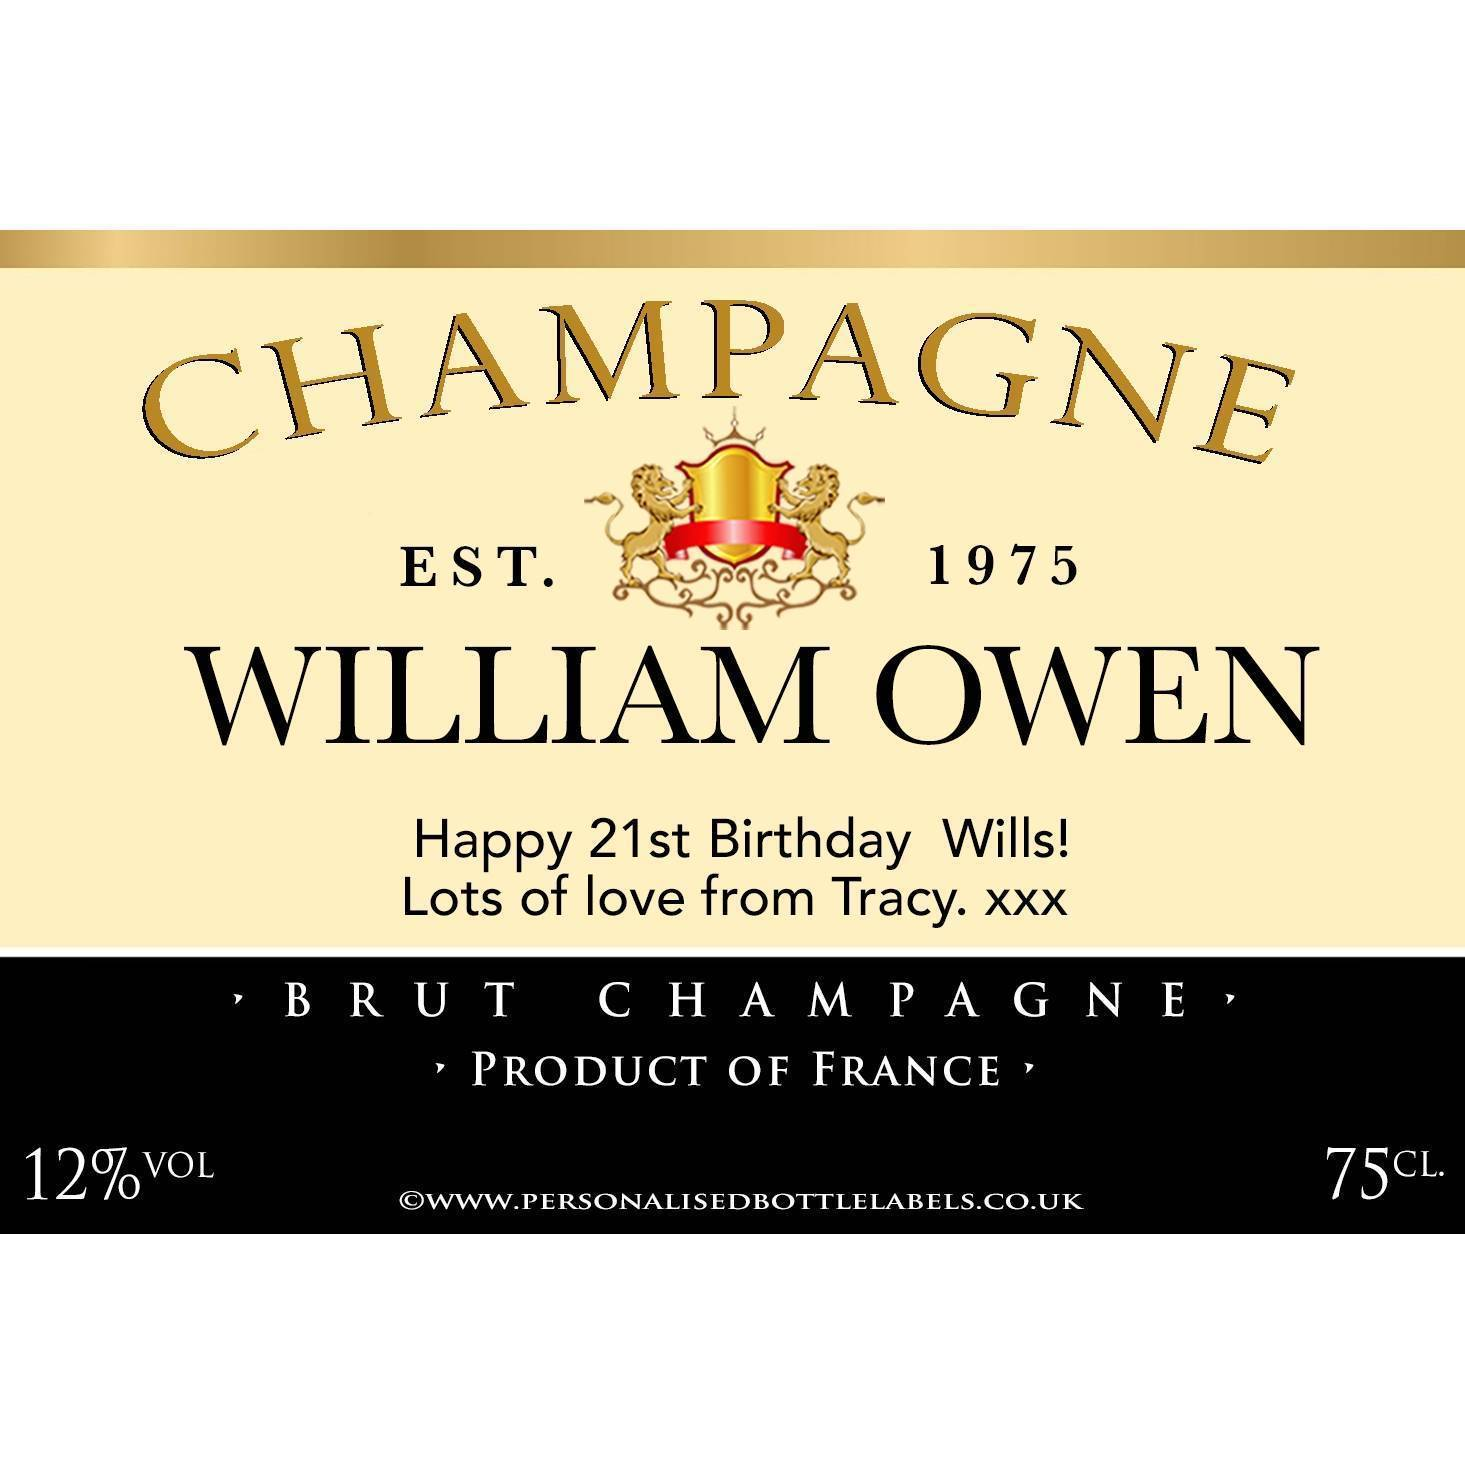 99p personalised champagne bottle label